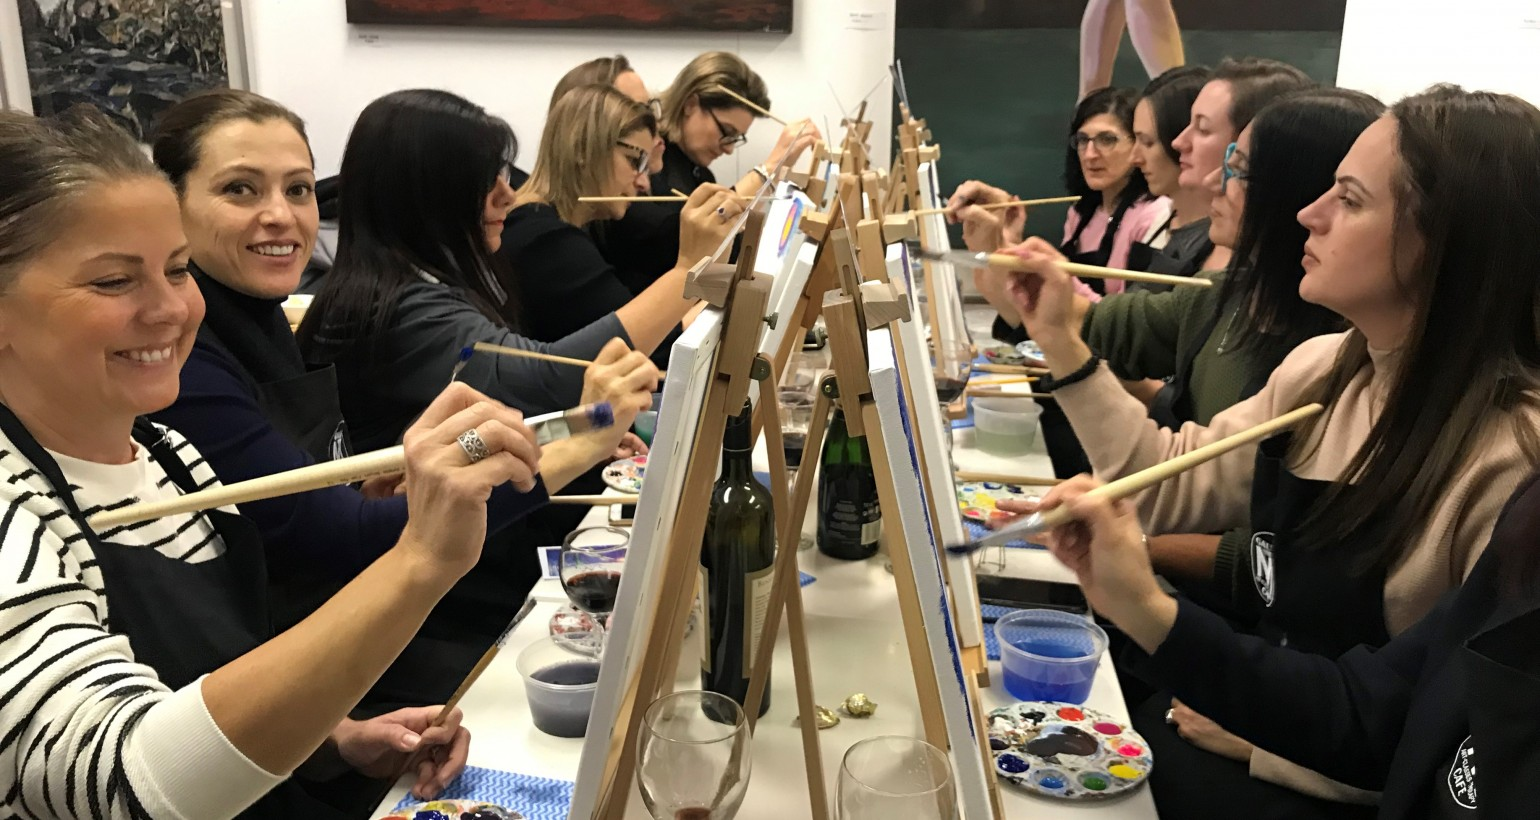 Adult Art Parties, Team Building Events and Private Parties – Any Occasion.